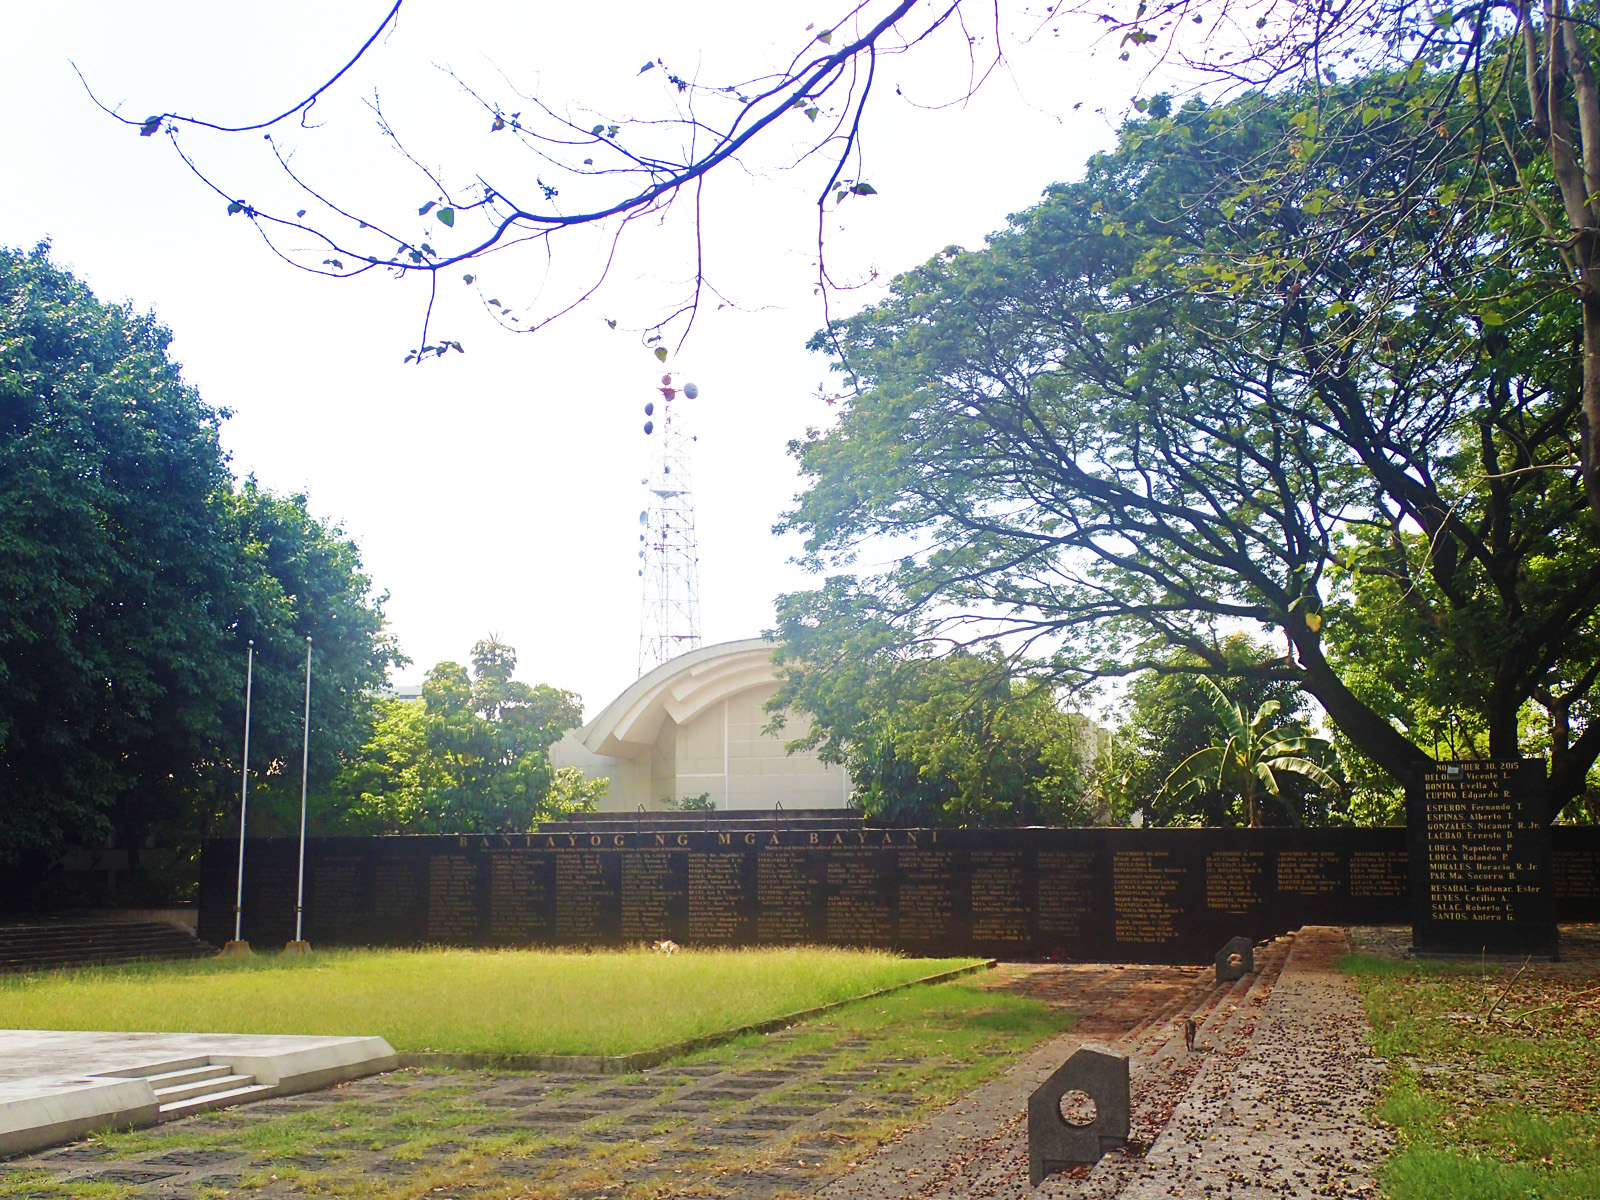 WALL OF REMEMBRANCE. At the end of a grassy expanse is a granite wall bearing the names of Marcos era heroes and martyrs.